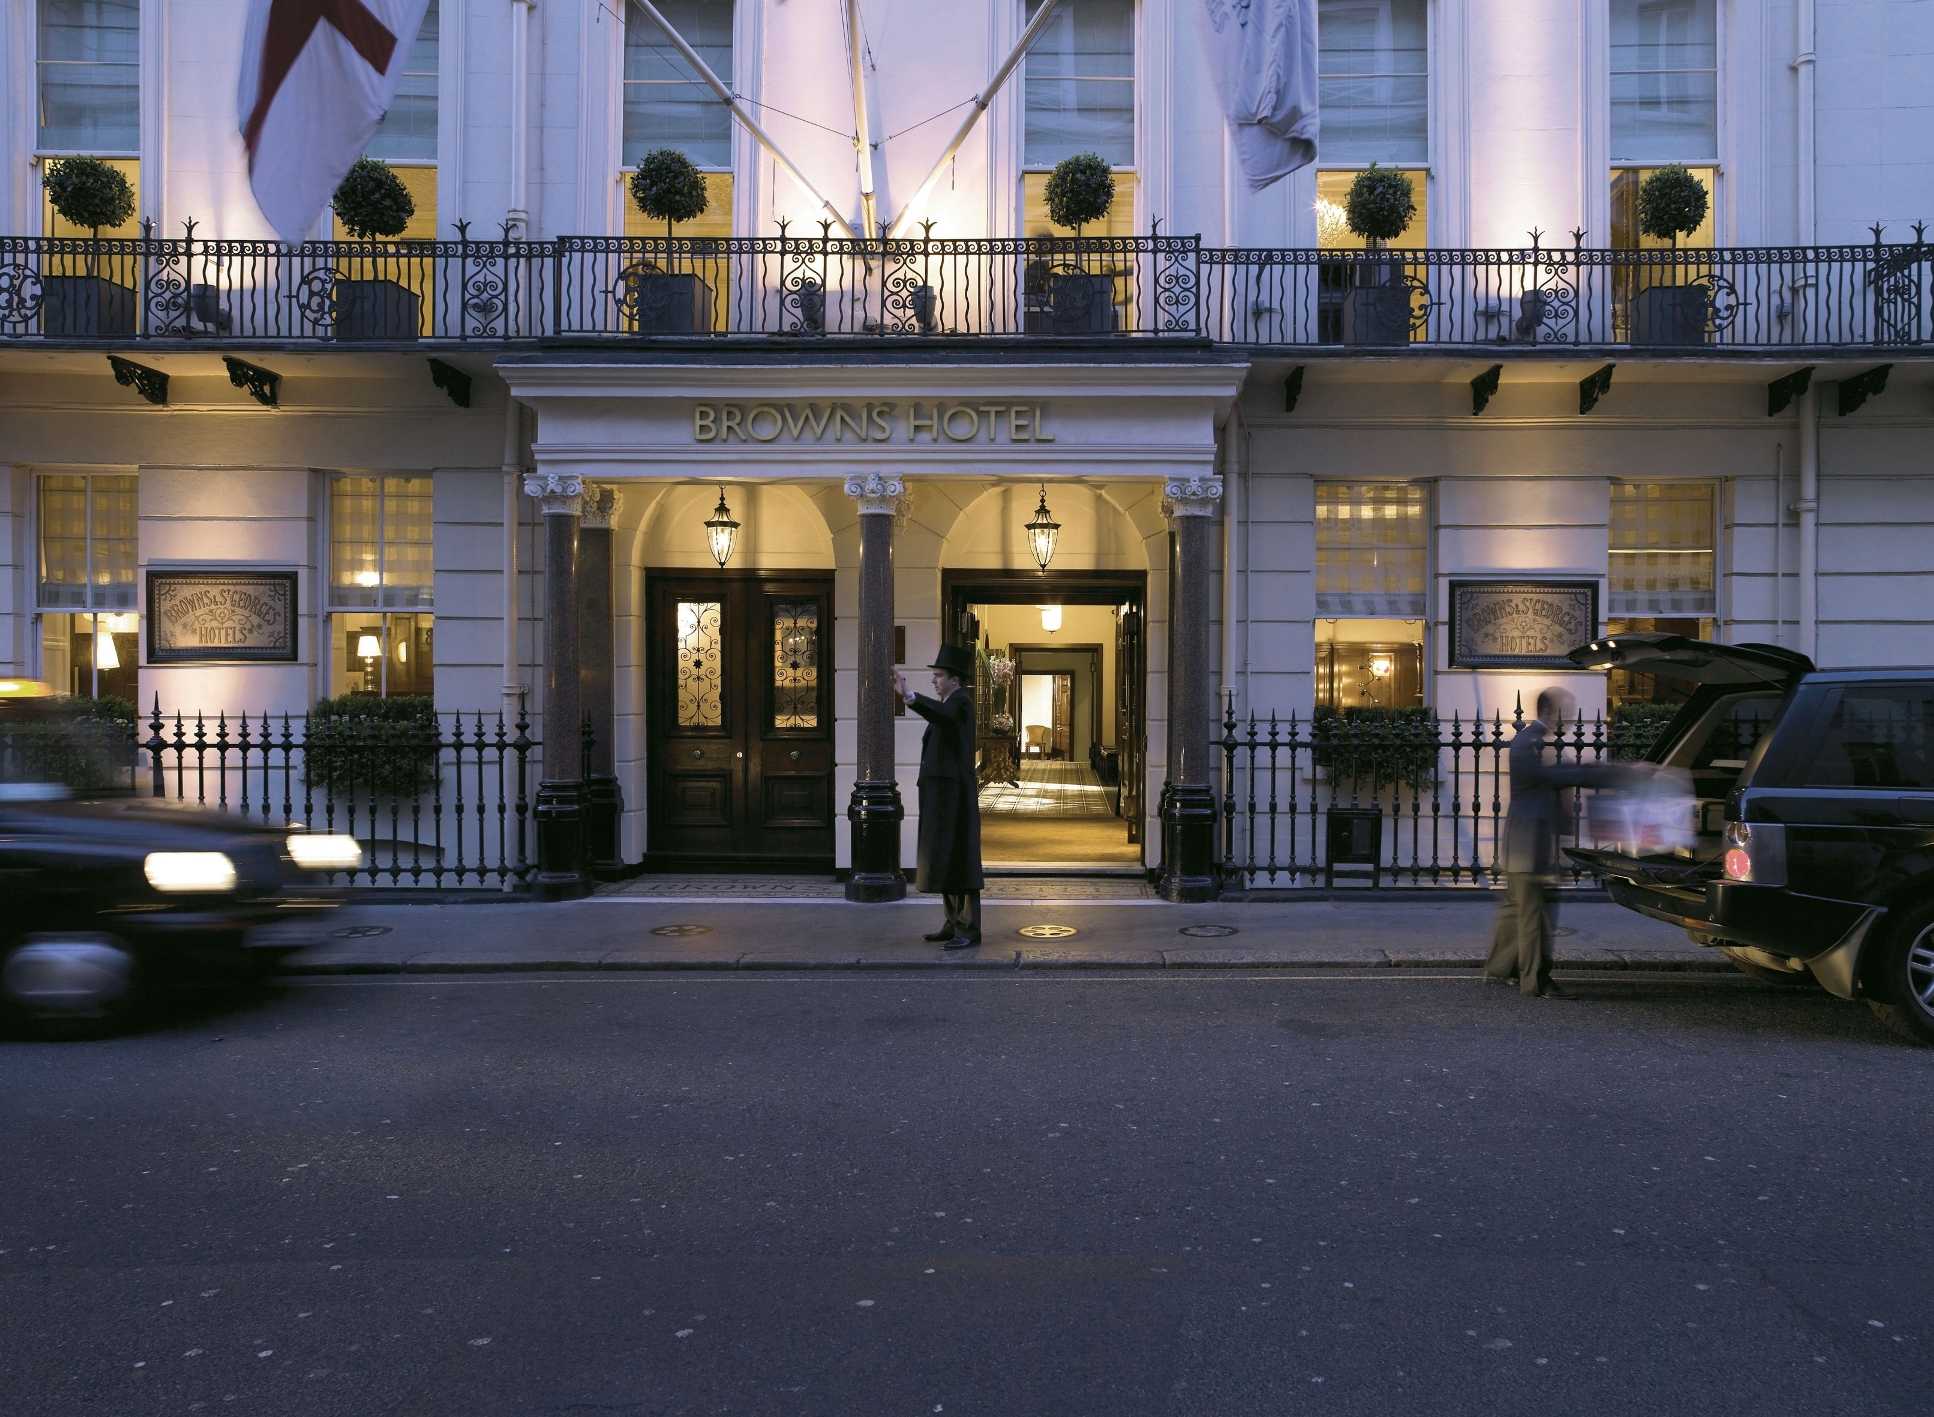 Browns Hotel by Rocco Forte